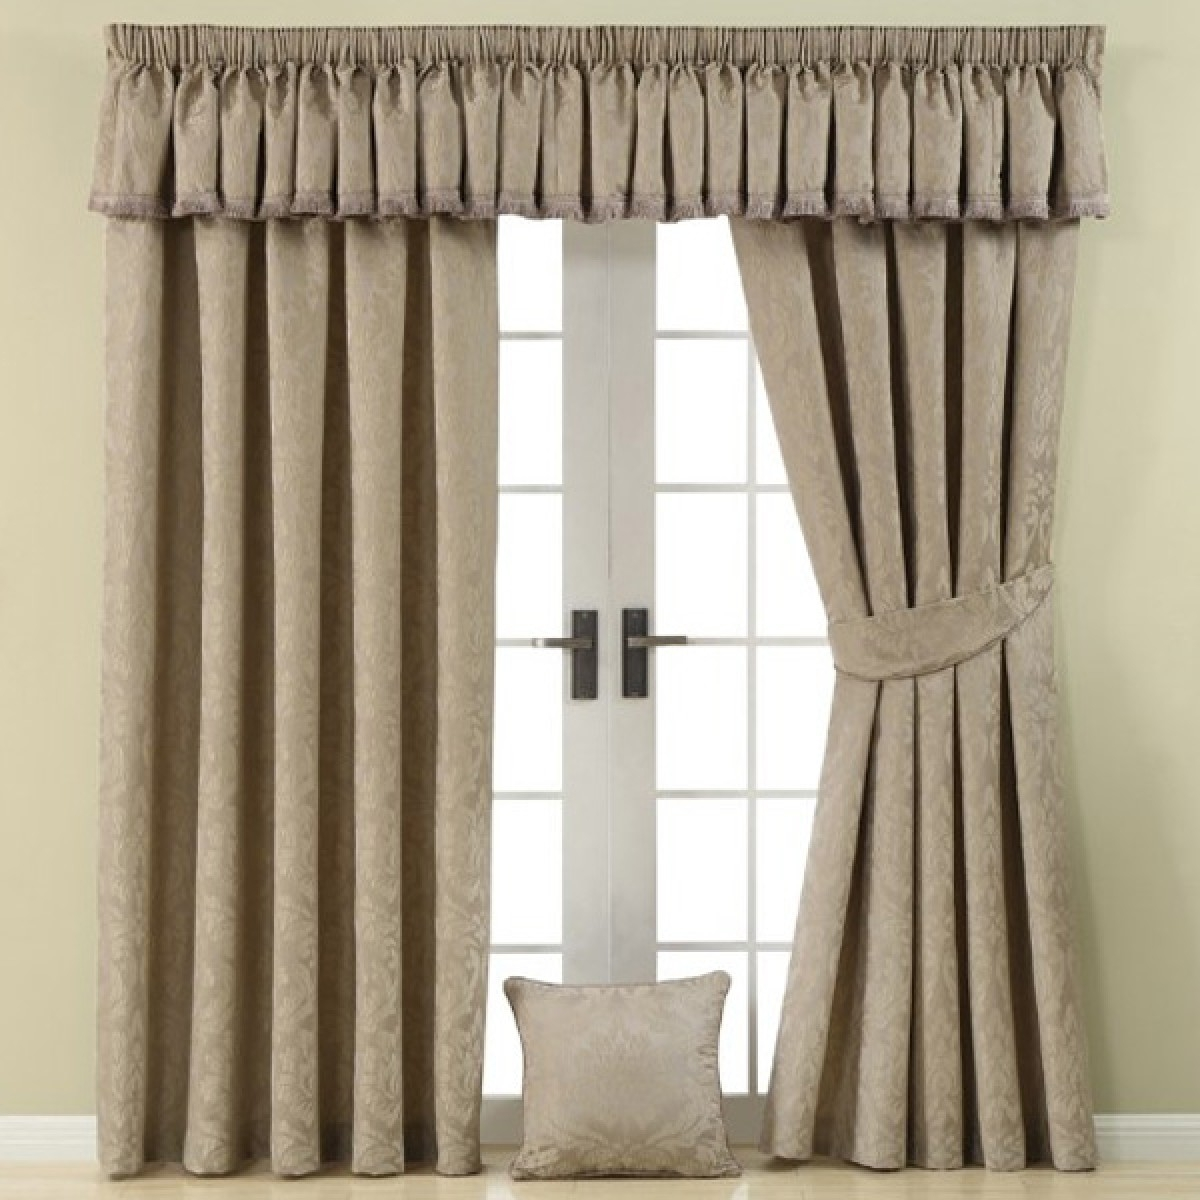 Lined Pencil Pleat Curtains Taupe For Pencil Pleat Curtains (Image 5 of 15)